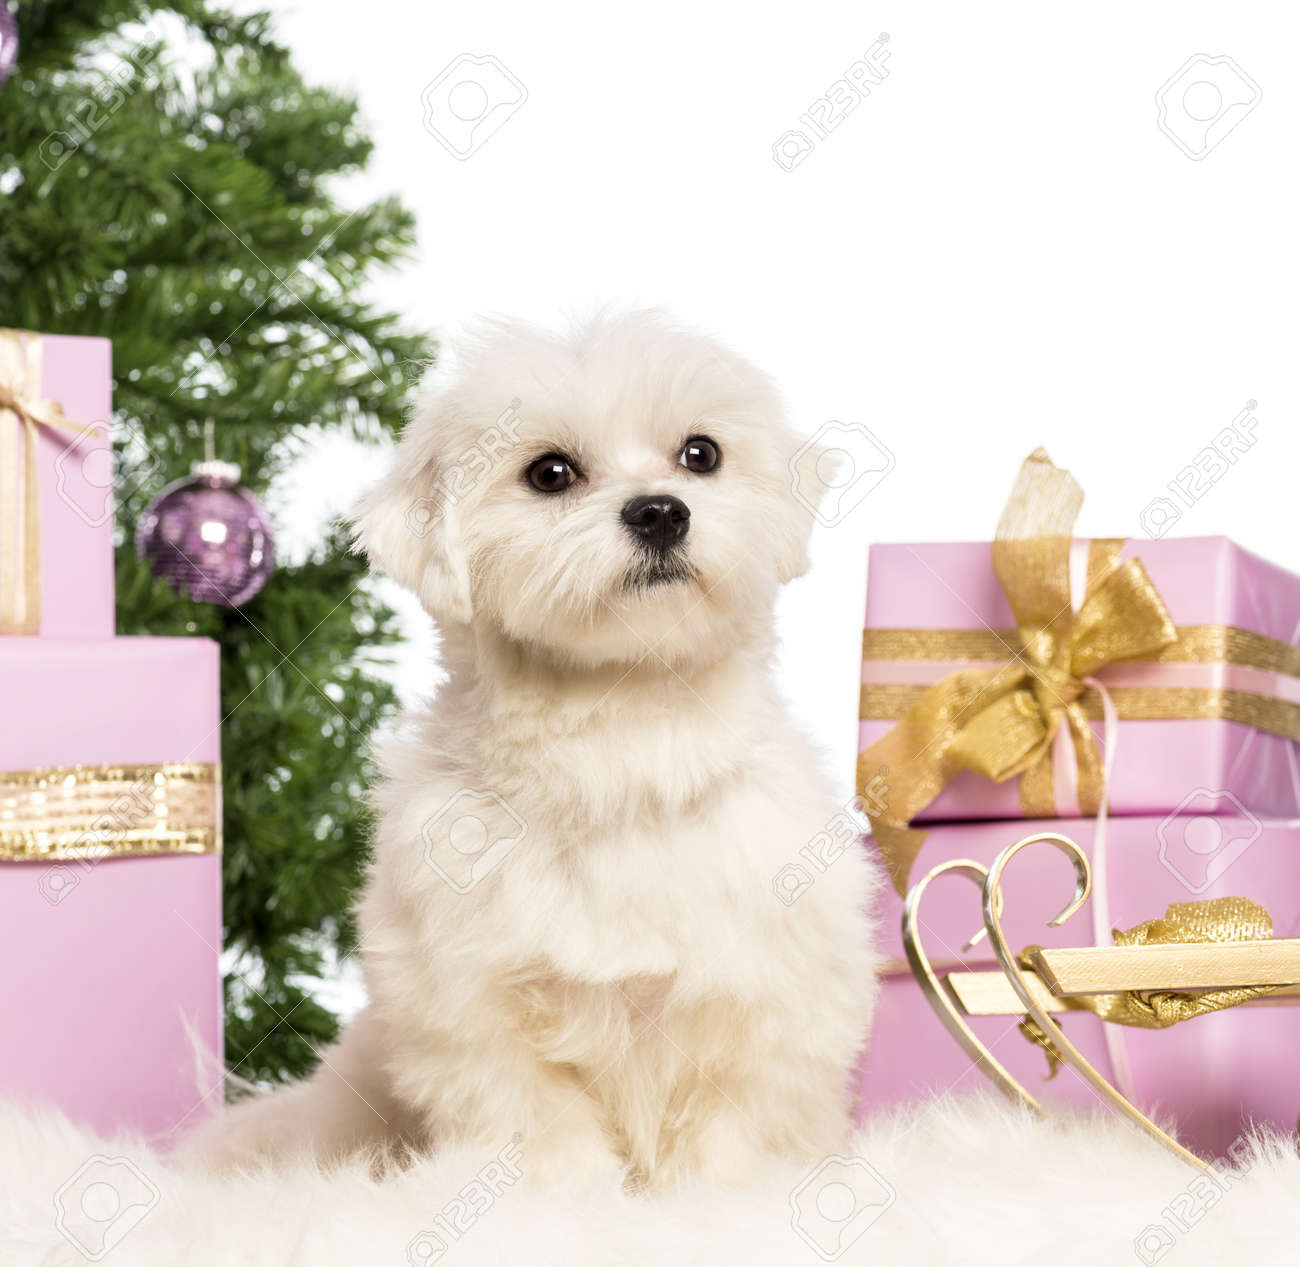 Maltese sitting in front of Christmas decorations against white background Stock Photo - 17291731